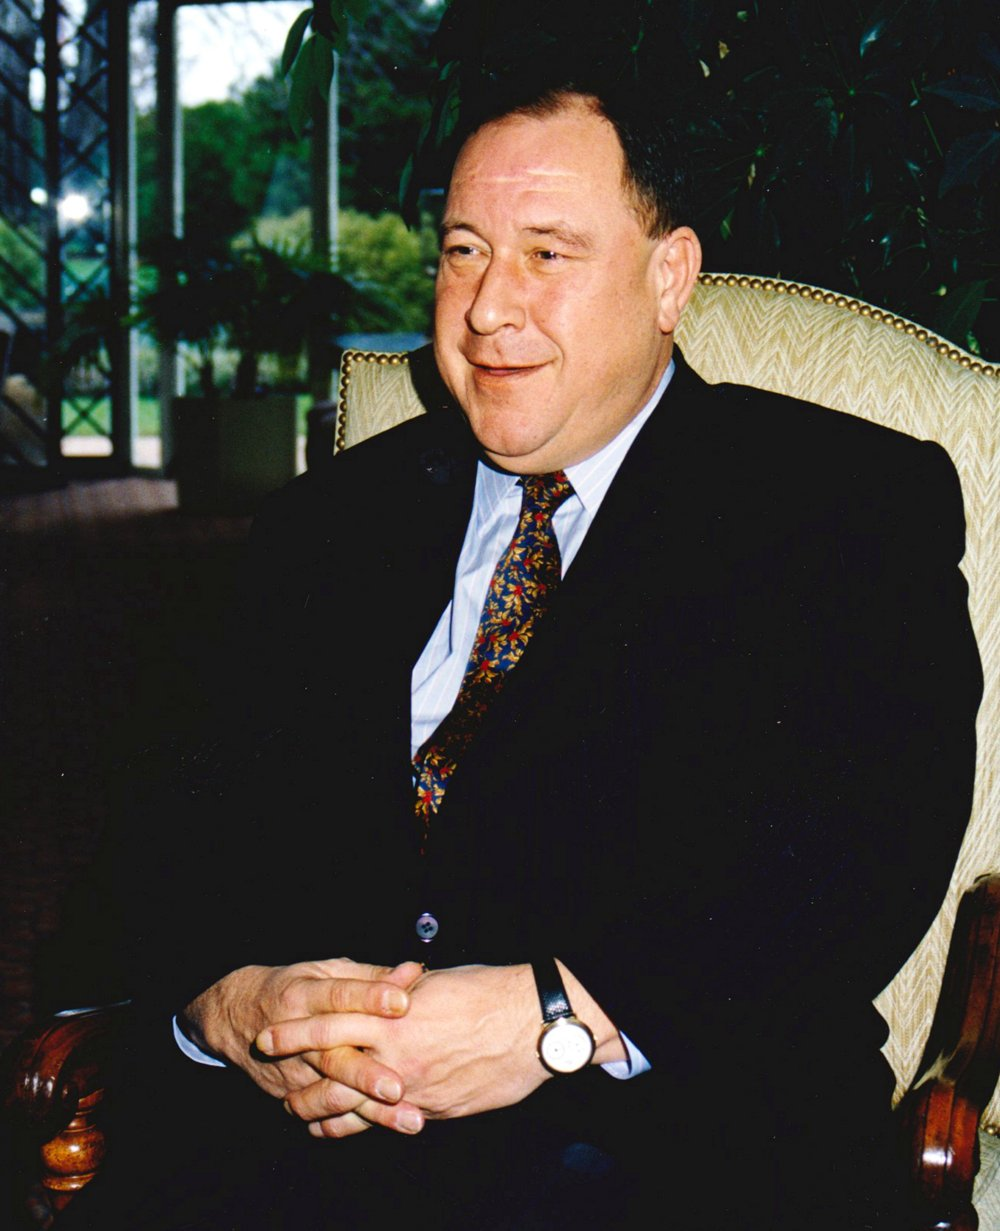 Jean Pierson served as CEO and Managing Director between 1985 and 1998.